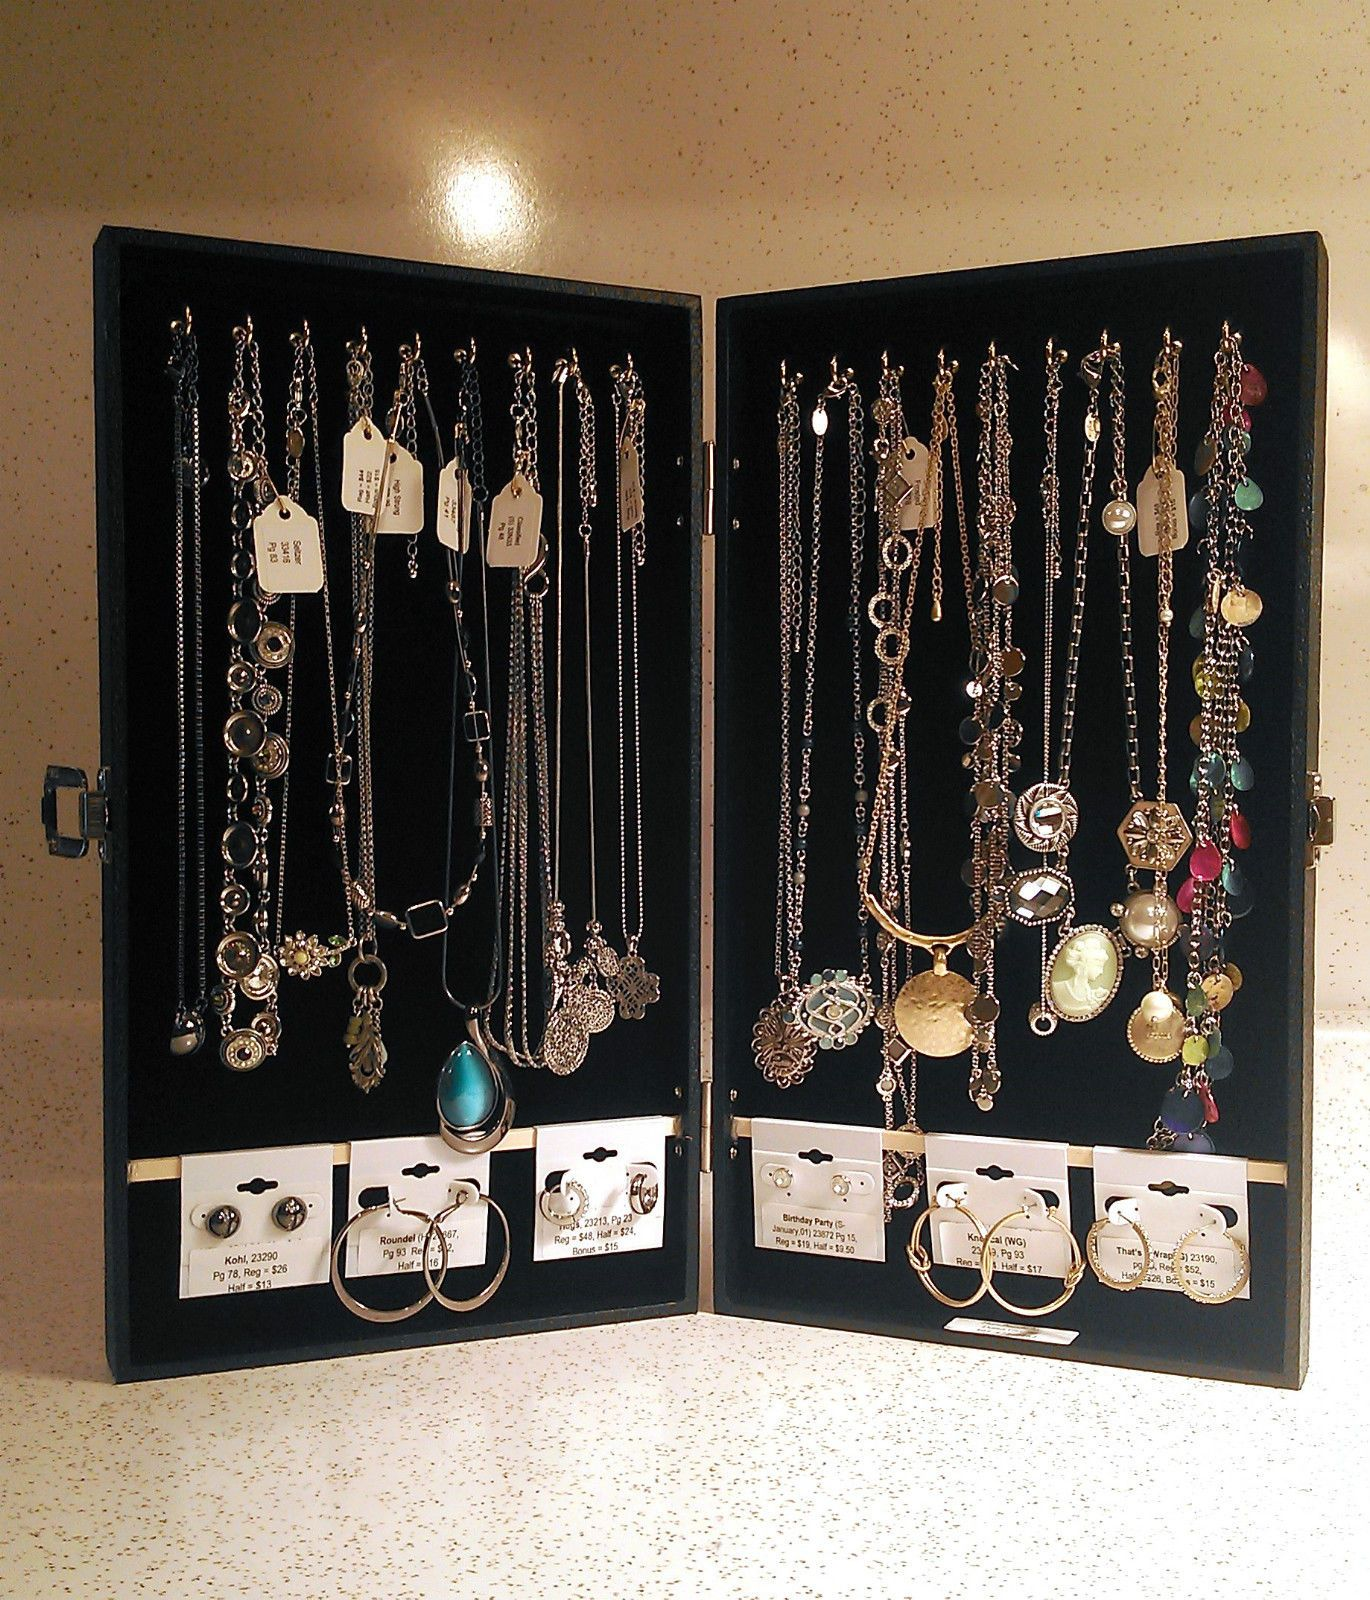 Portable Jewelry Display Cases For Necklaces And Earrings